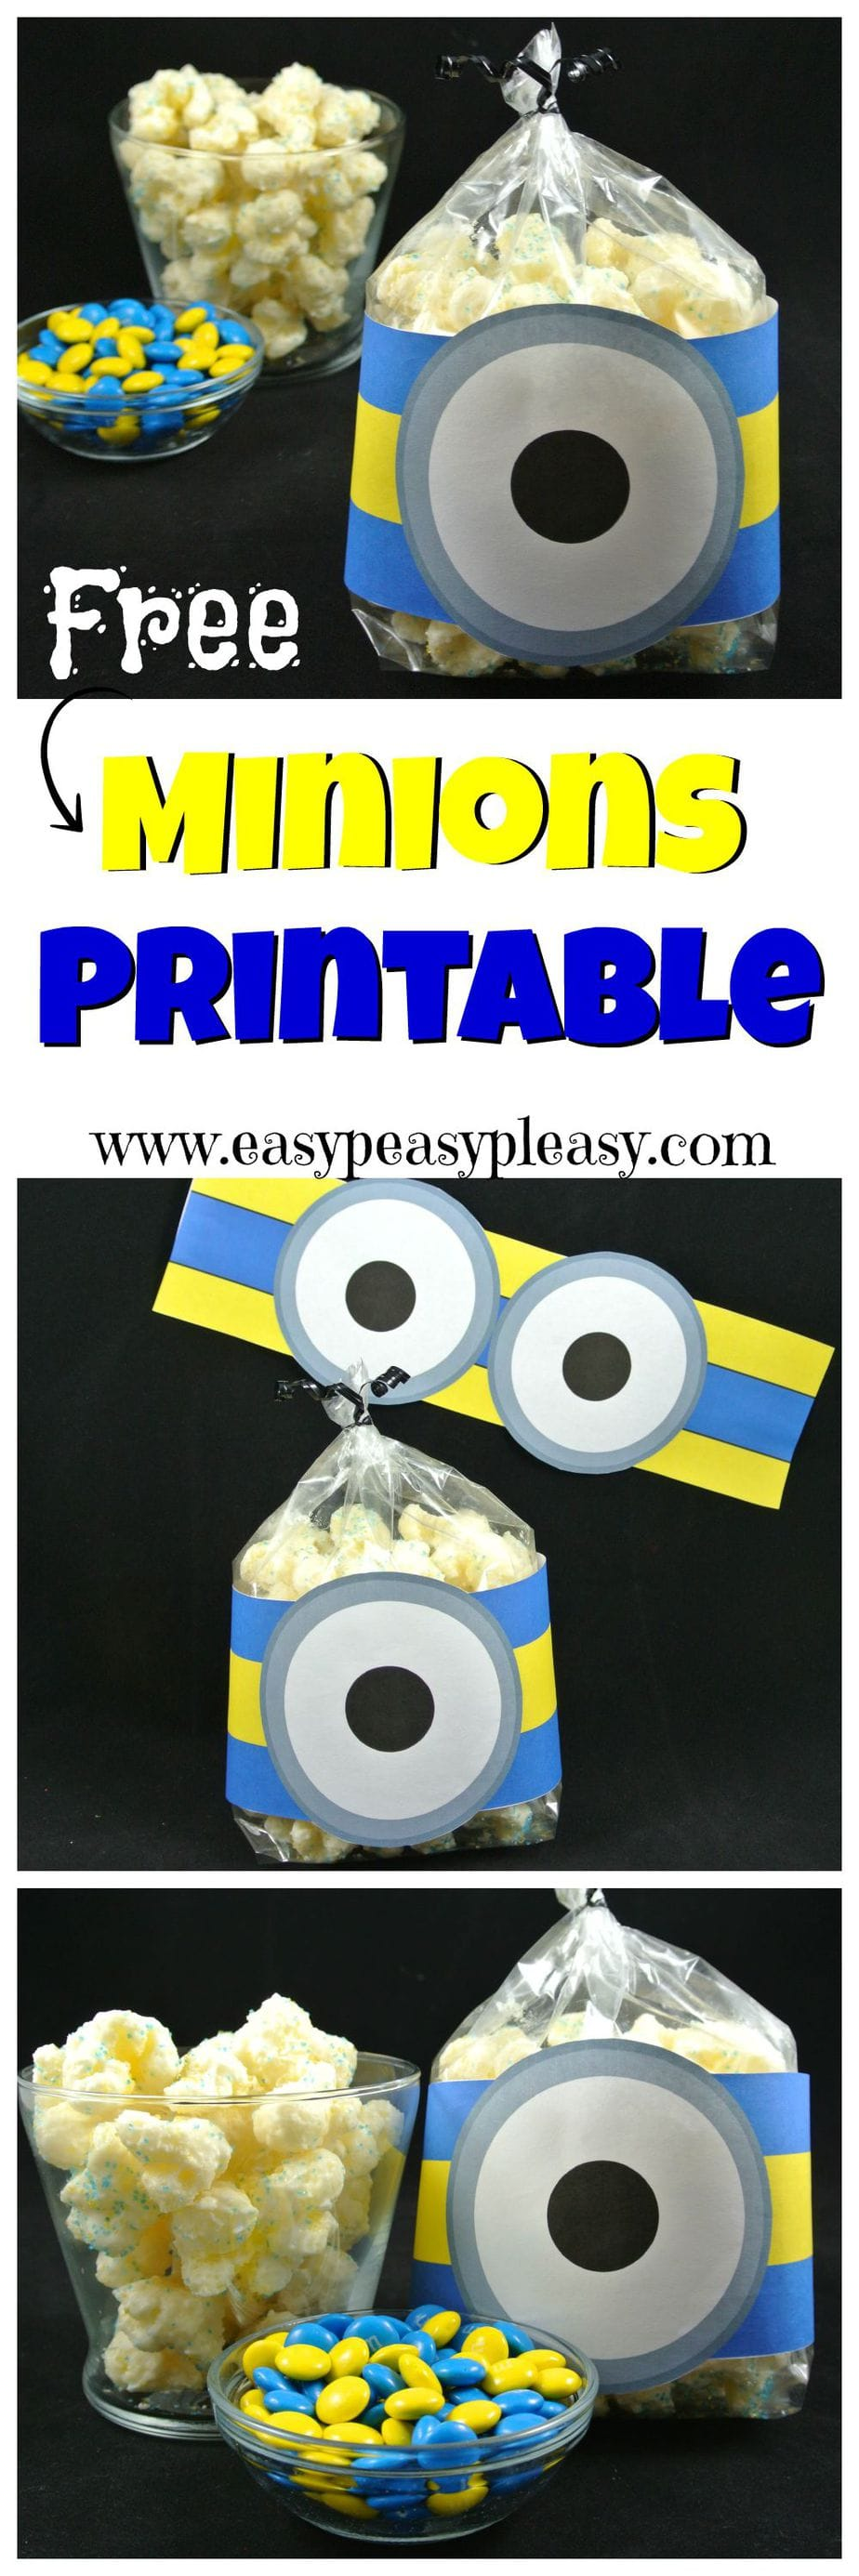 photo about Minion Symbol Printable identified as Free of charge Minions Printable - Simple Peasy Pleasy